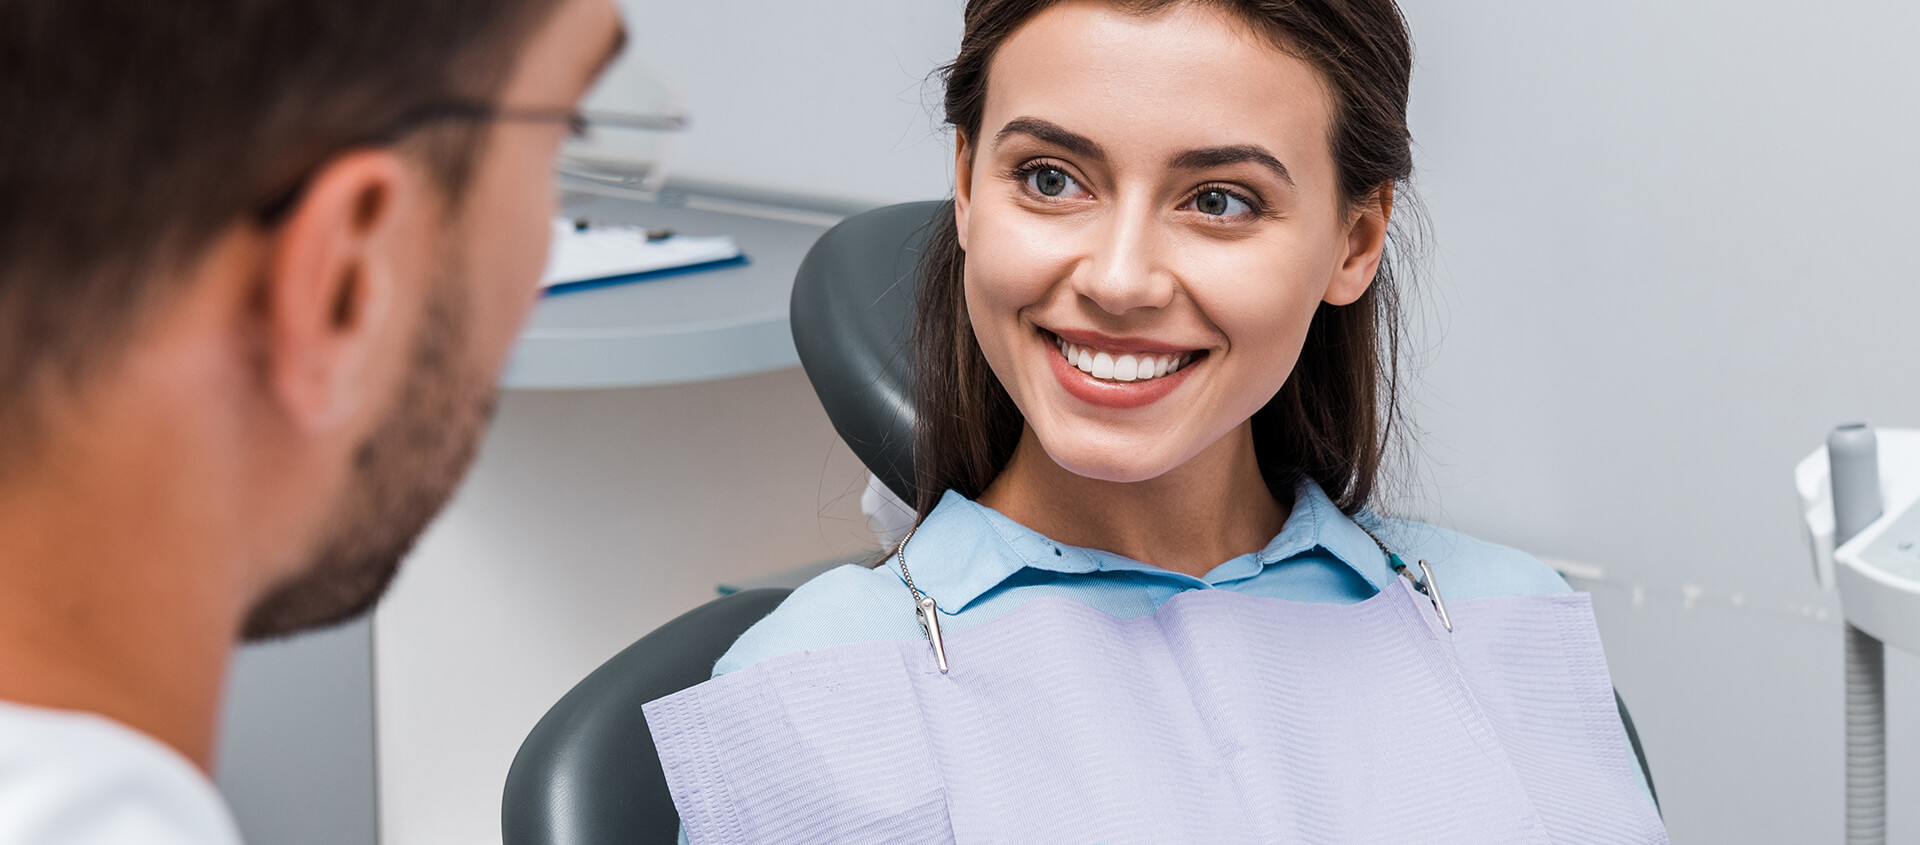 """In Kingston, PA Area, Patients Ask, """"Where Can I Find Dental Implants for My Missing Teeth?"""""""